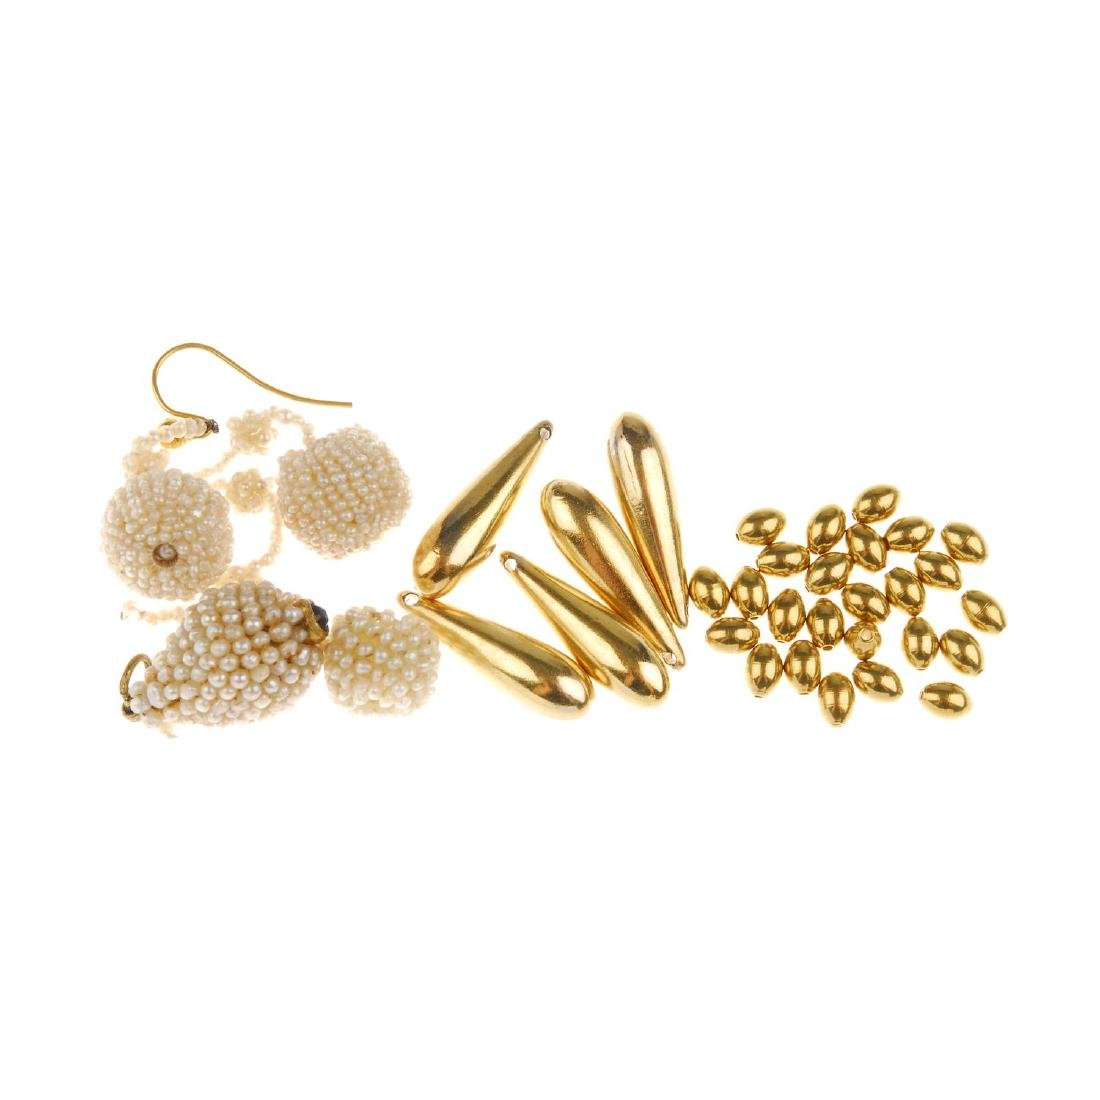 A selection of mainly jewellery components and parts.